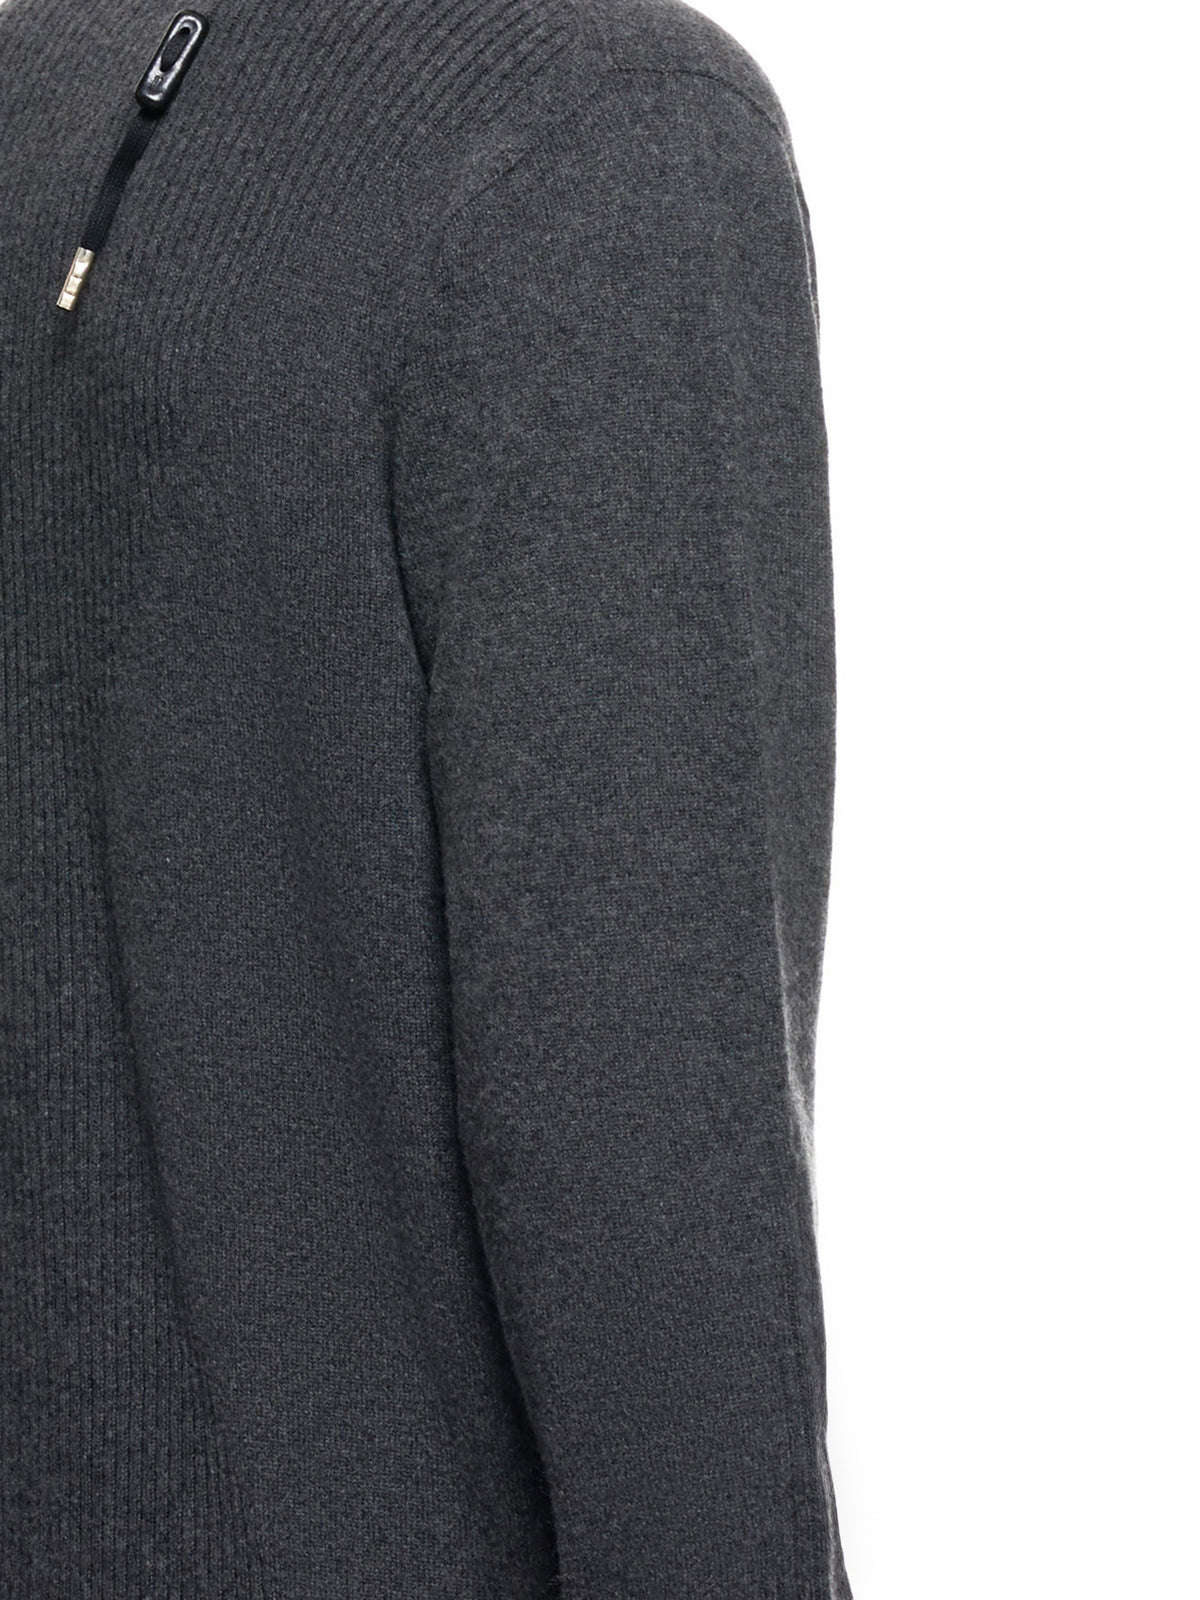 Cashmere Turtleneck (KN6-FPI30004-DARK-GREY)